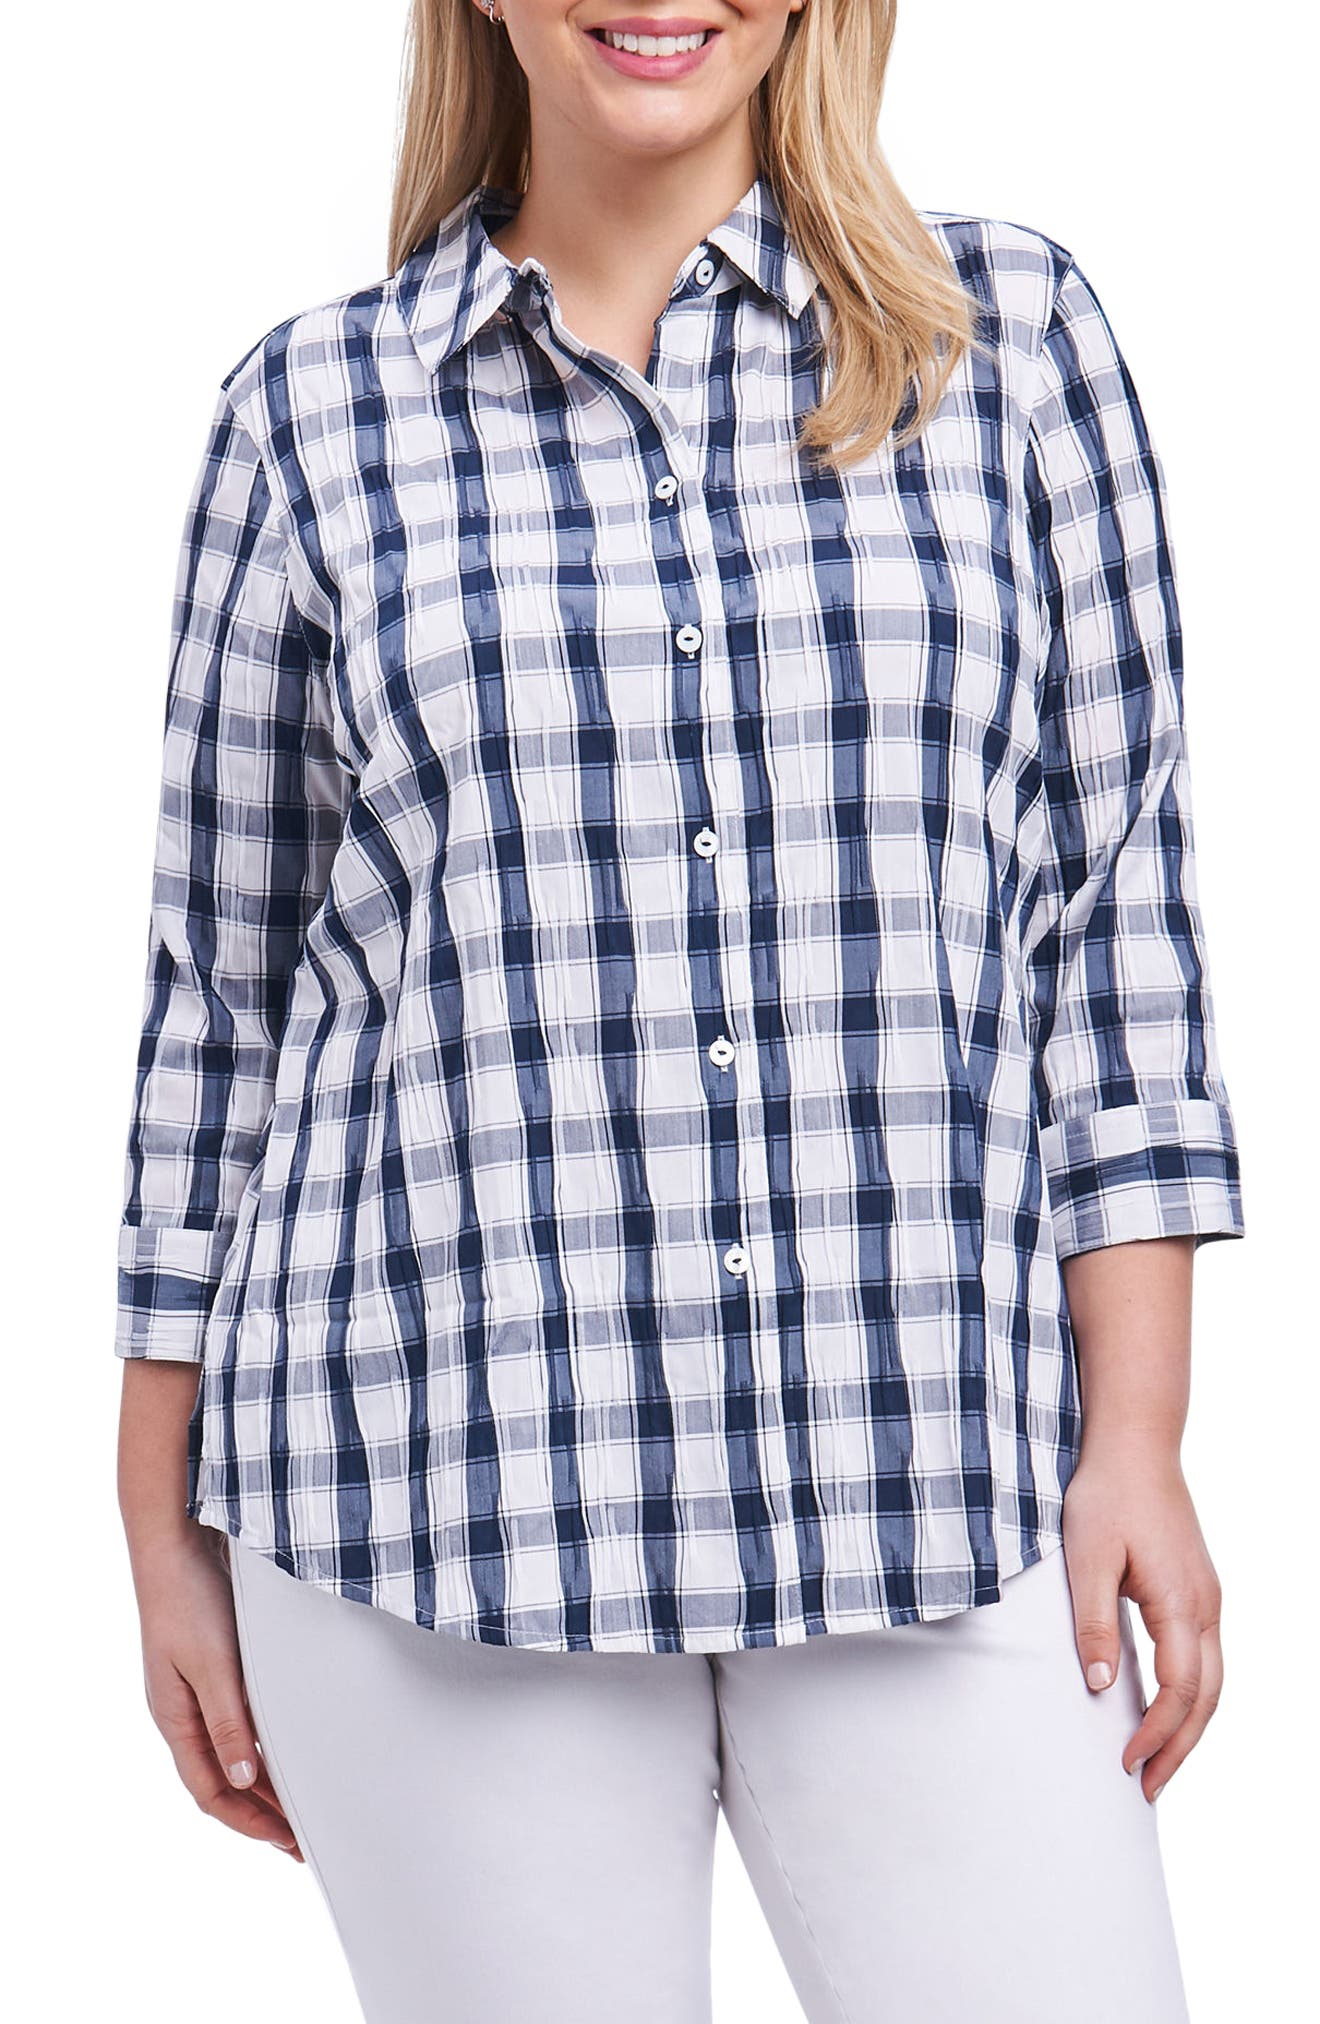 Sue Shaped Fit Crinkle Plaid Shirt,                             Main thumbnail 1, color,                             415